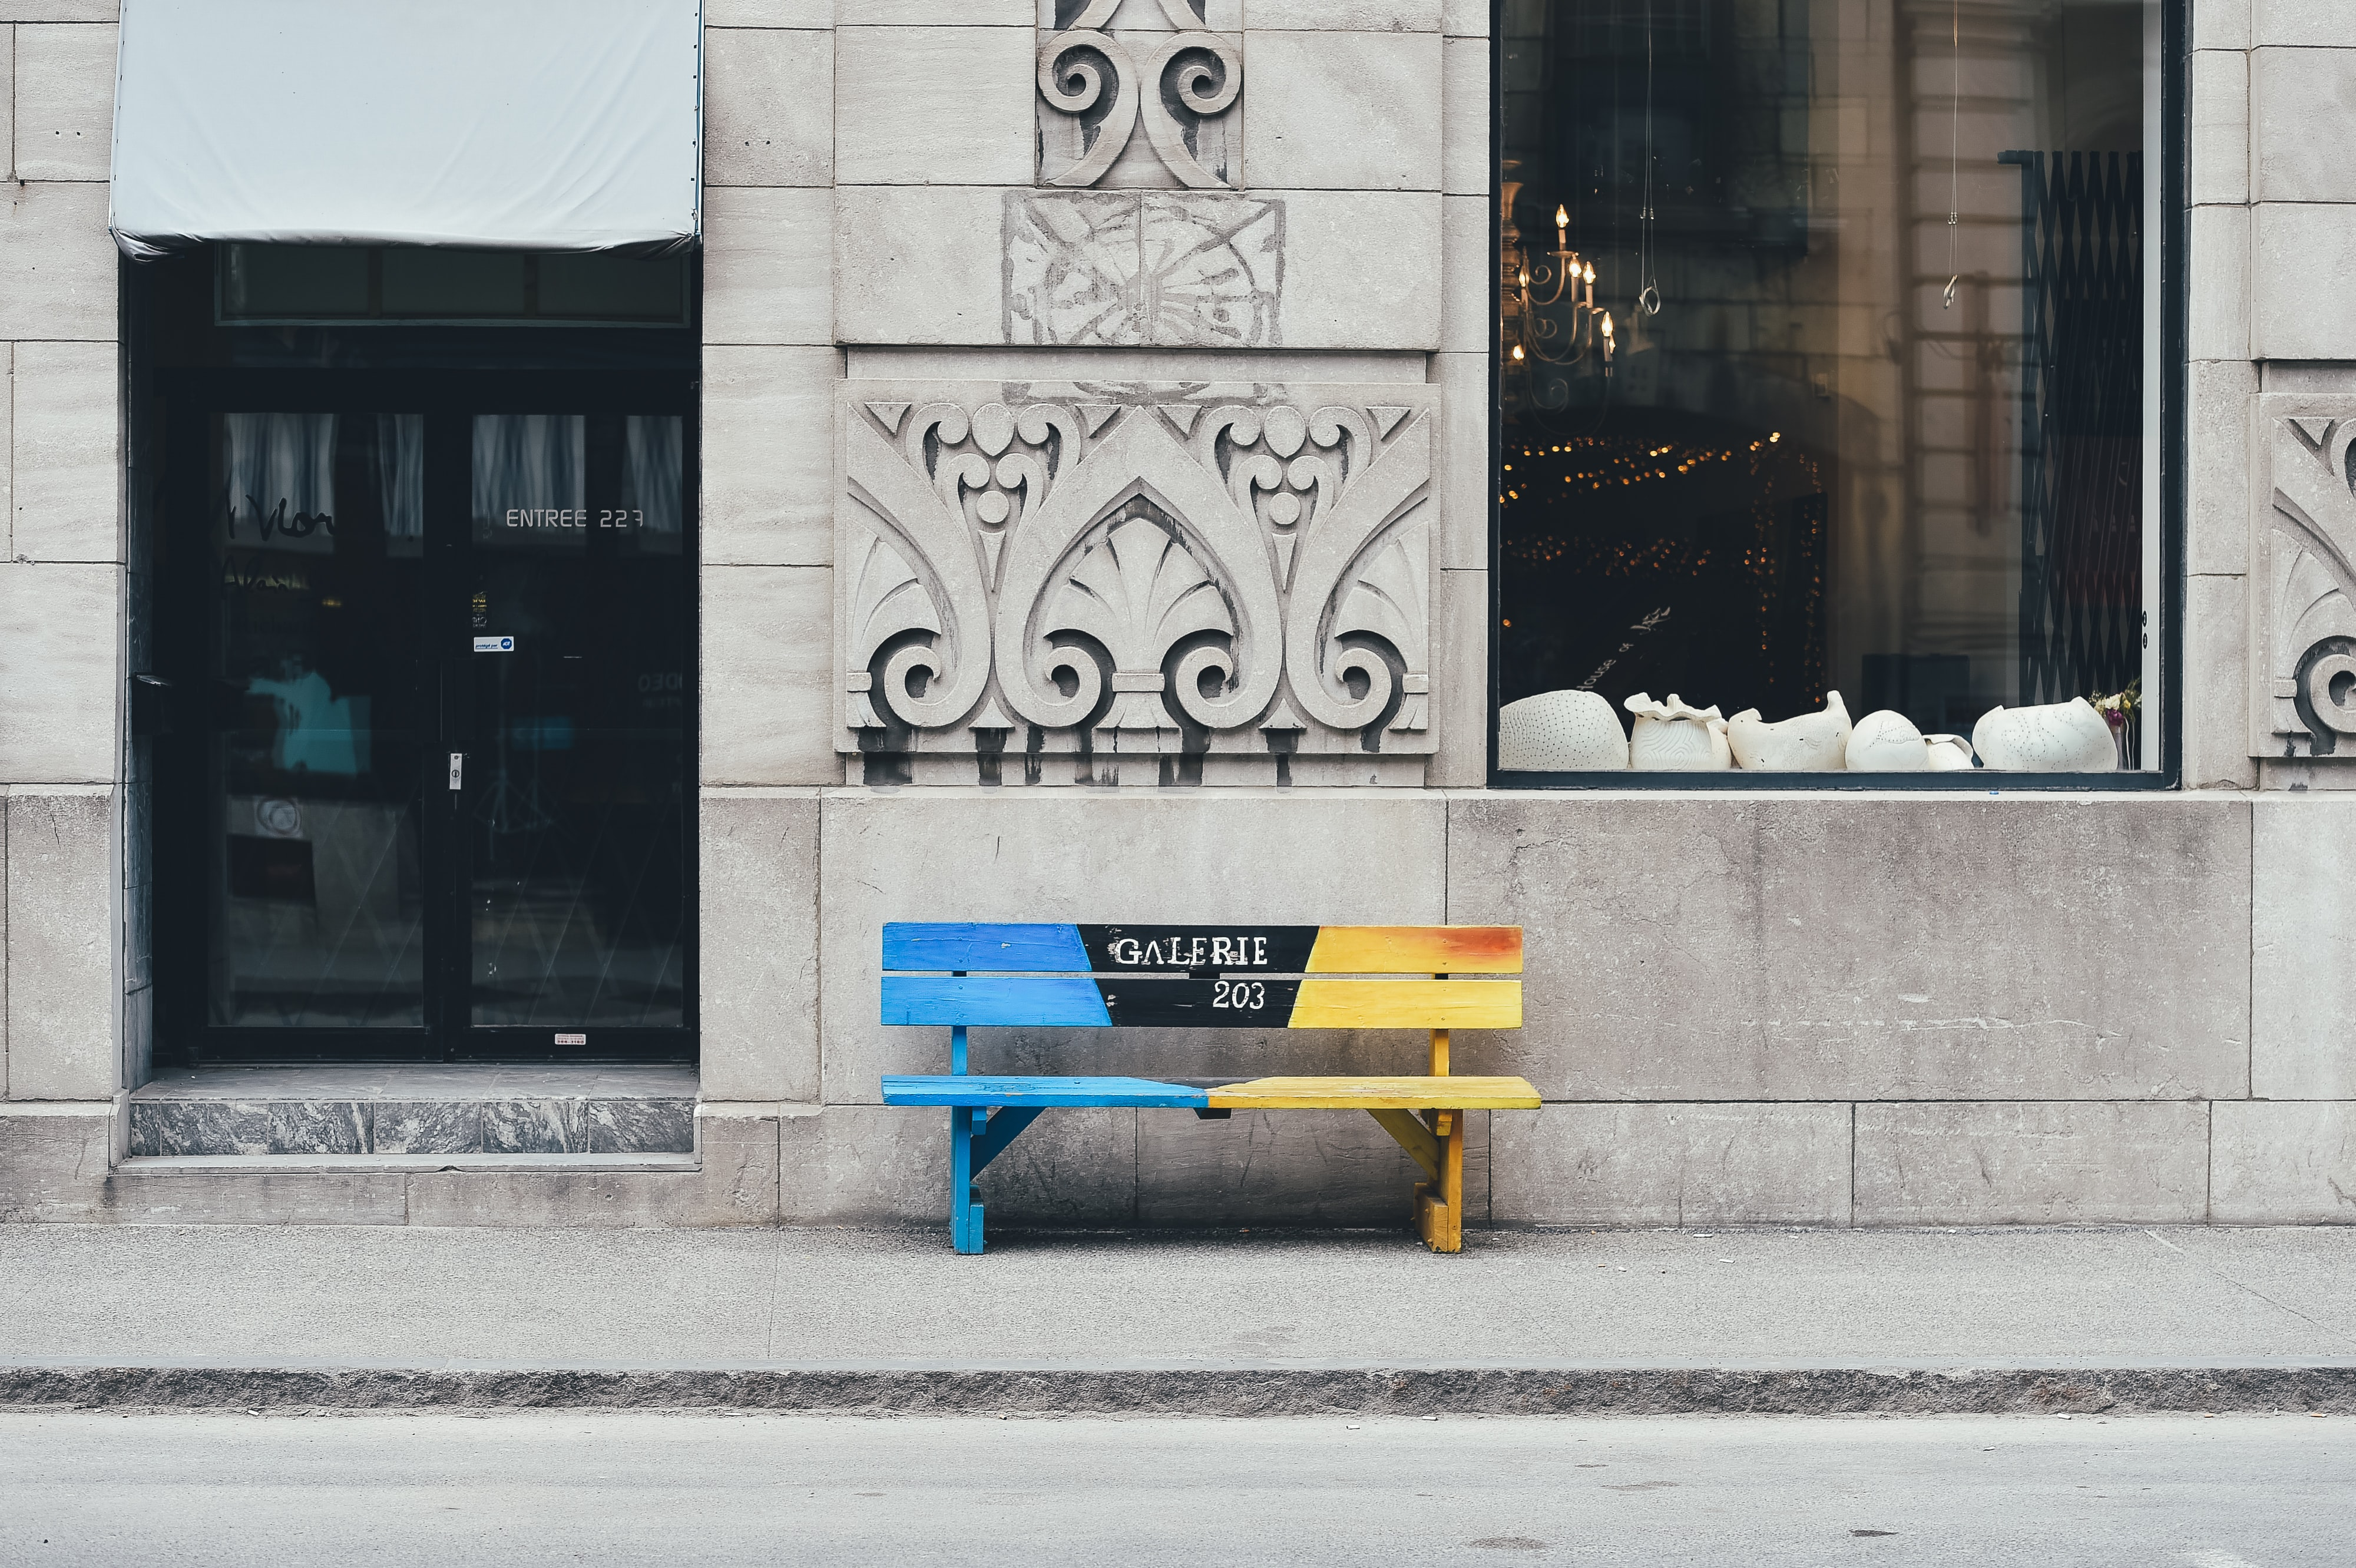 A blue and yellow short wooden bench located on a sidewalk outside a building in old Montreal.